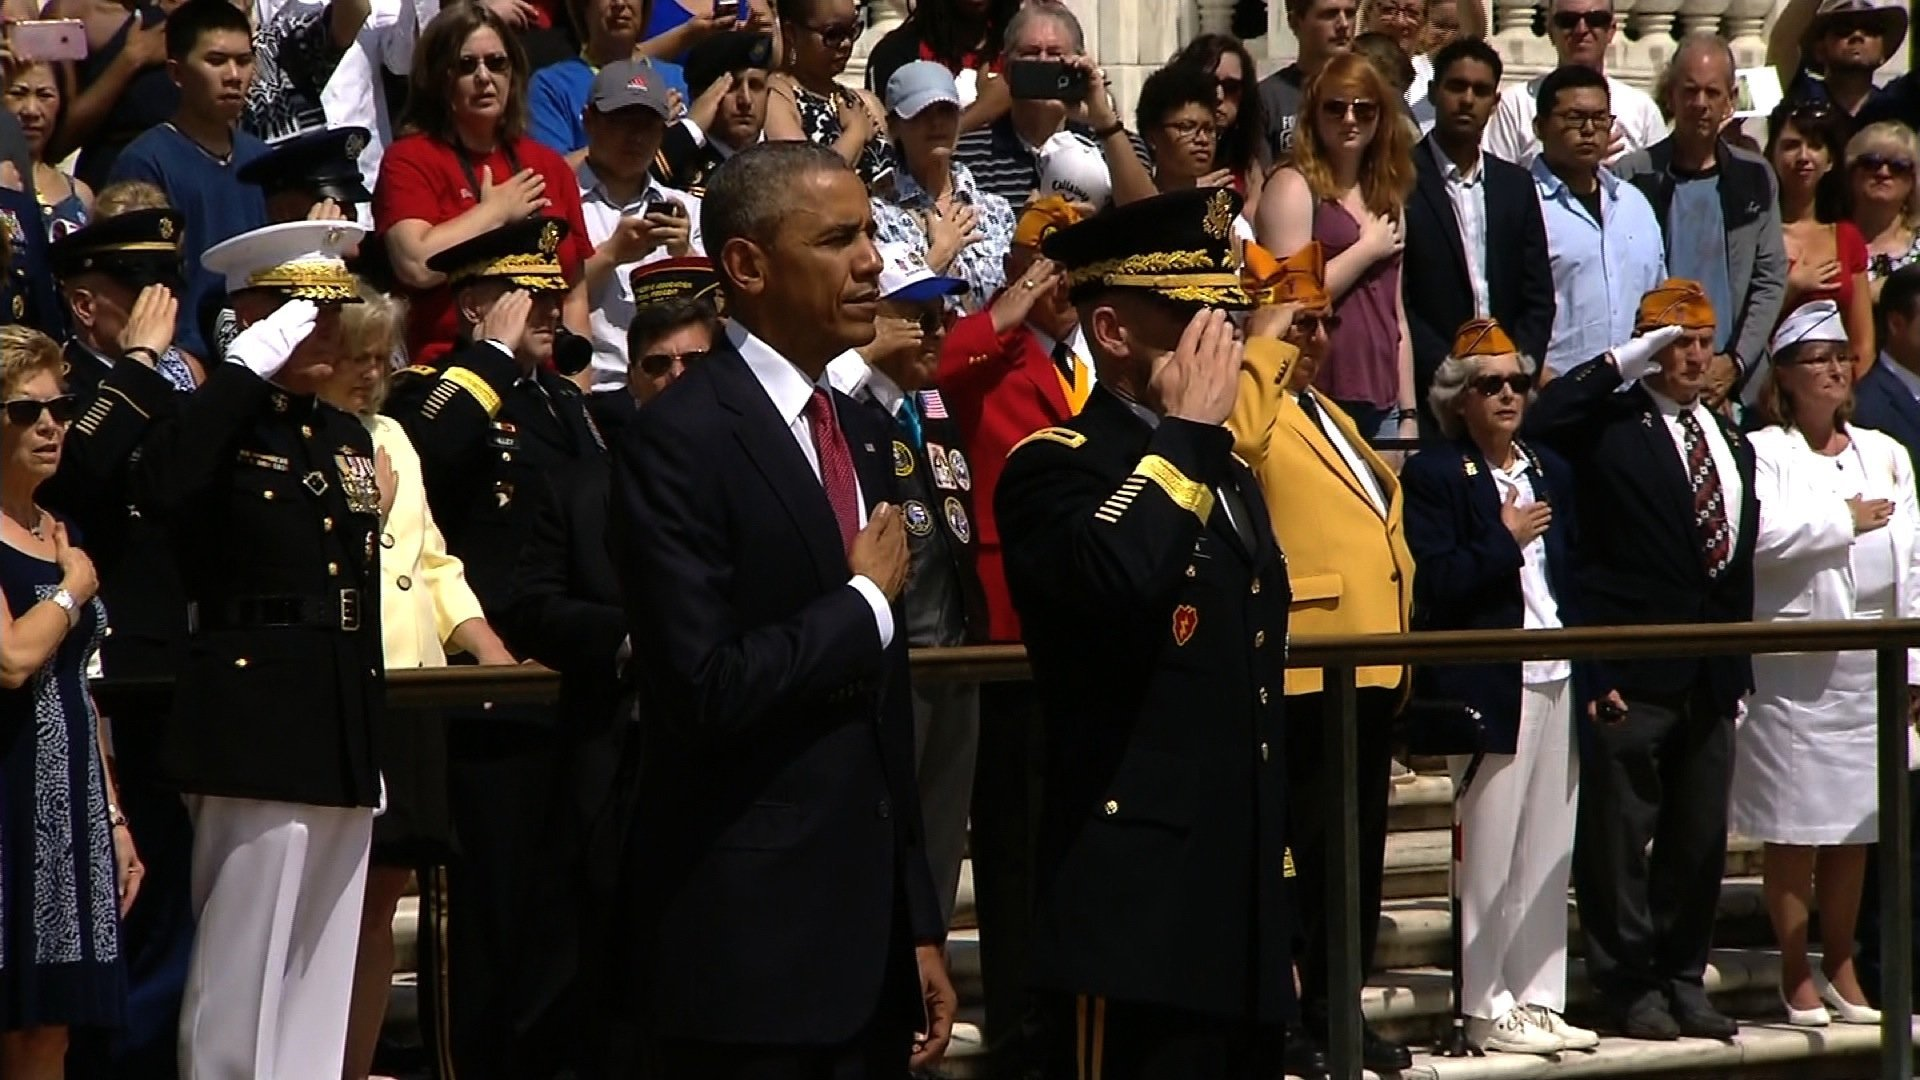 President Barack Obama marks his final Memorial Day as president by paying tribute to fallen U.S. soldiers at Arlington National Cemetery on Monday.